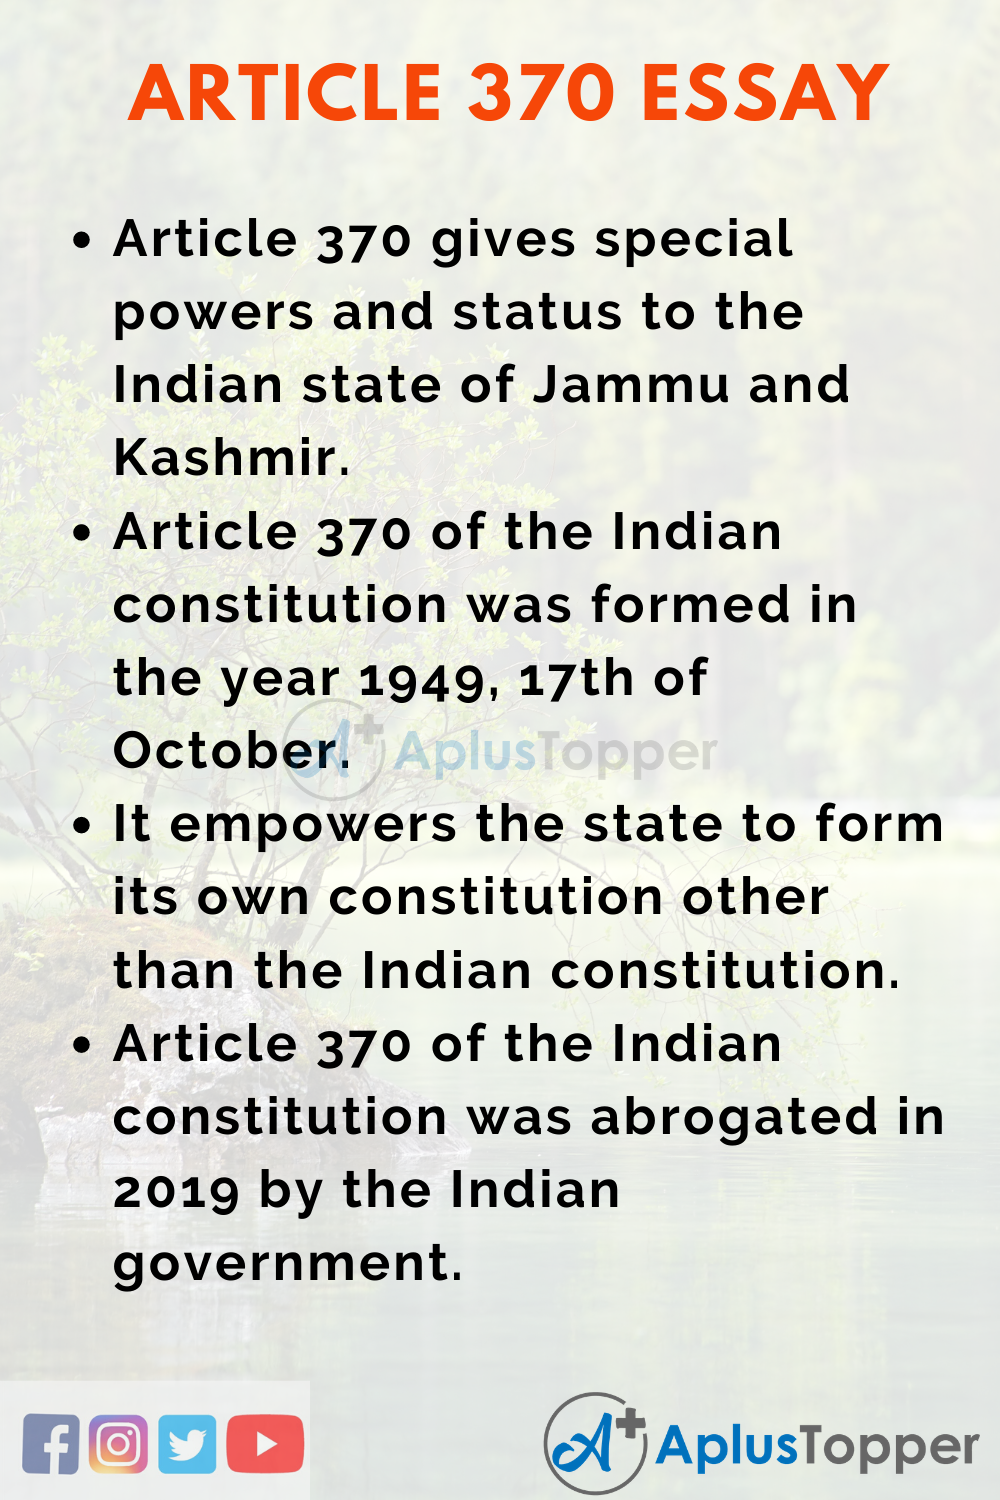 Essay on Article 370